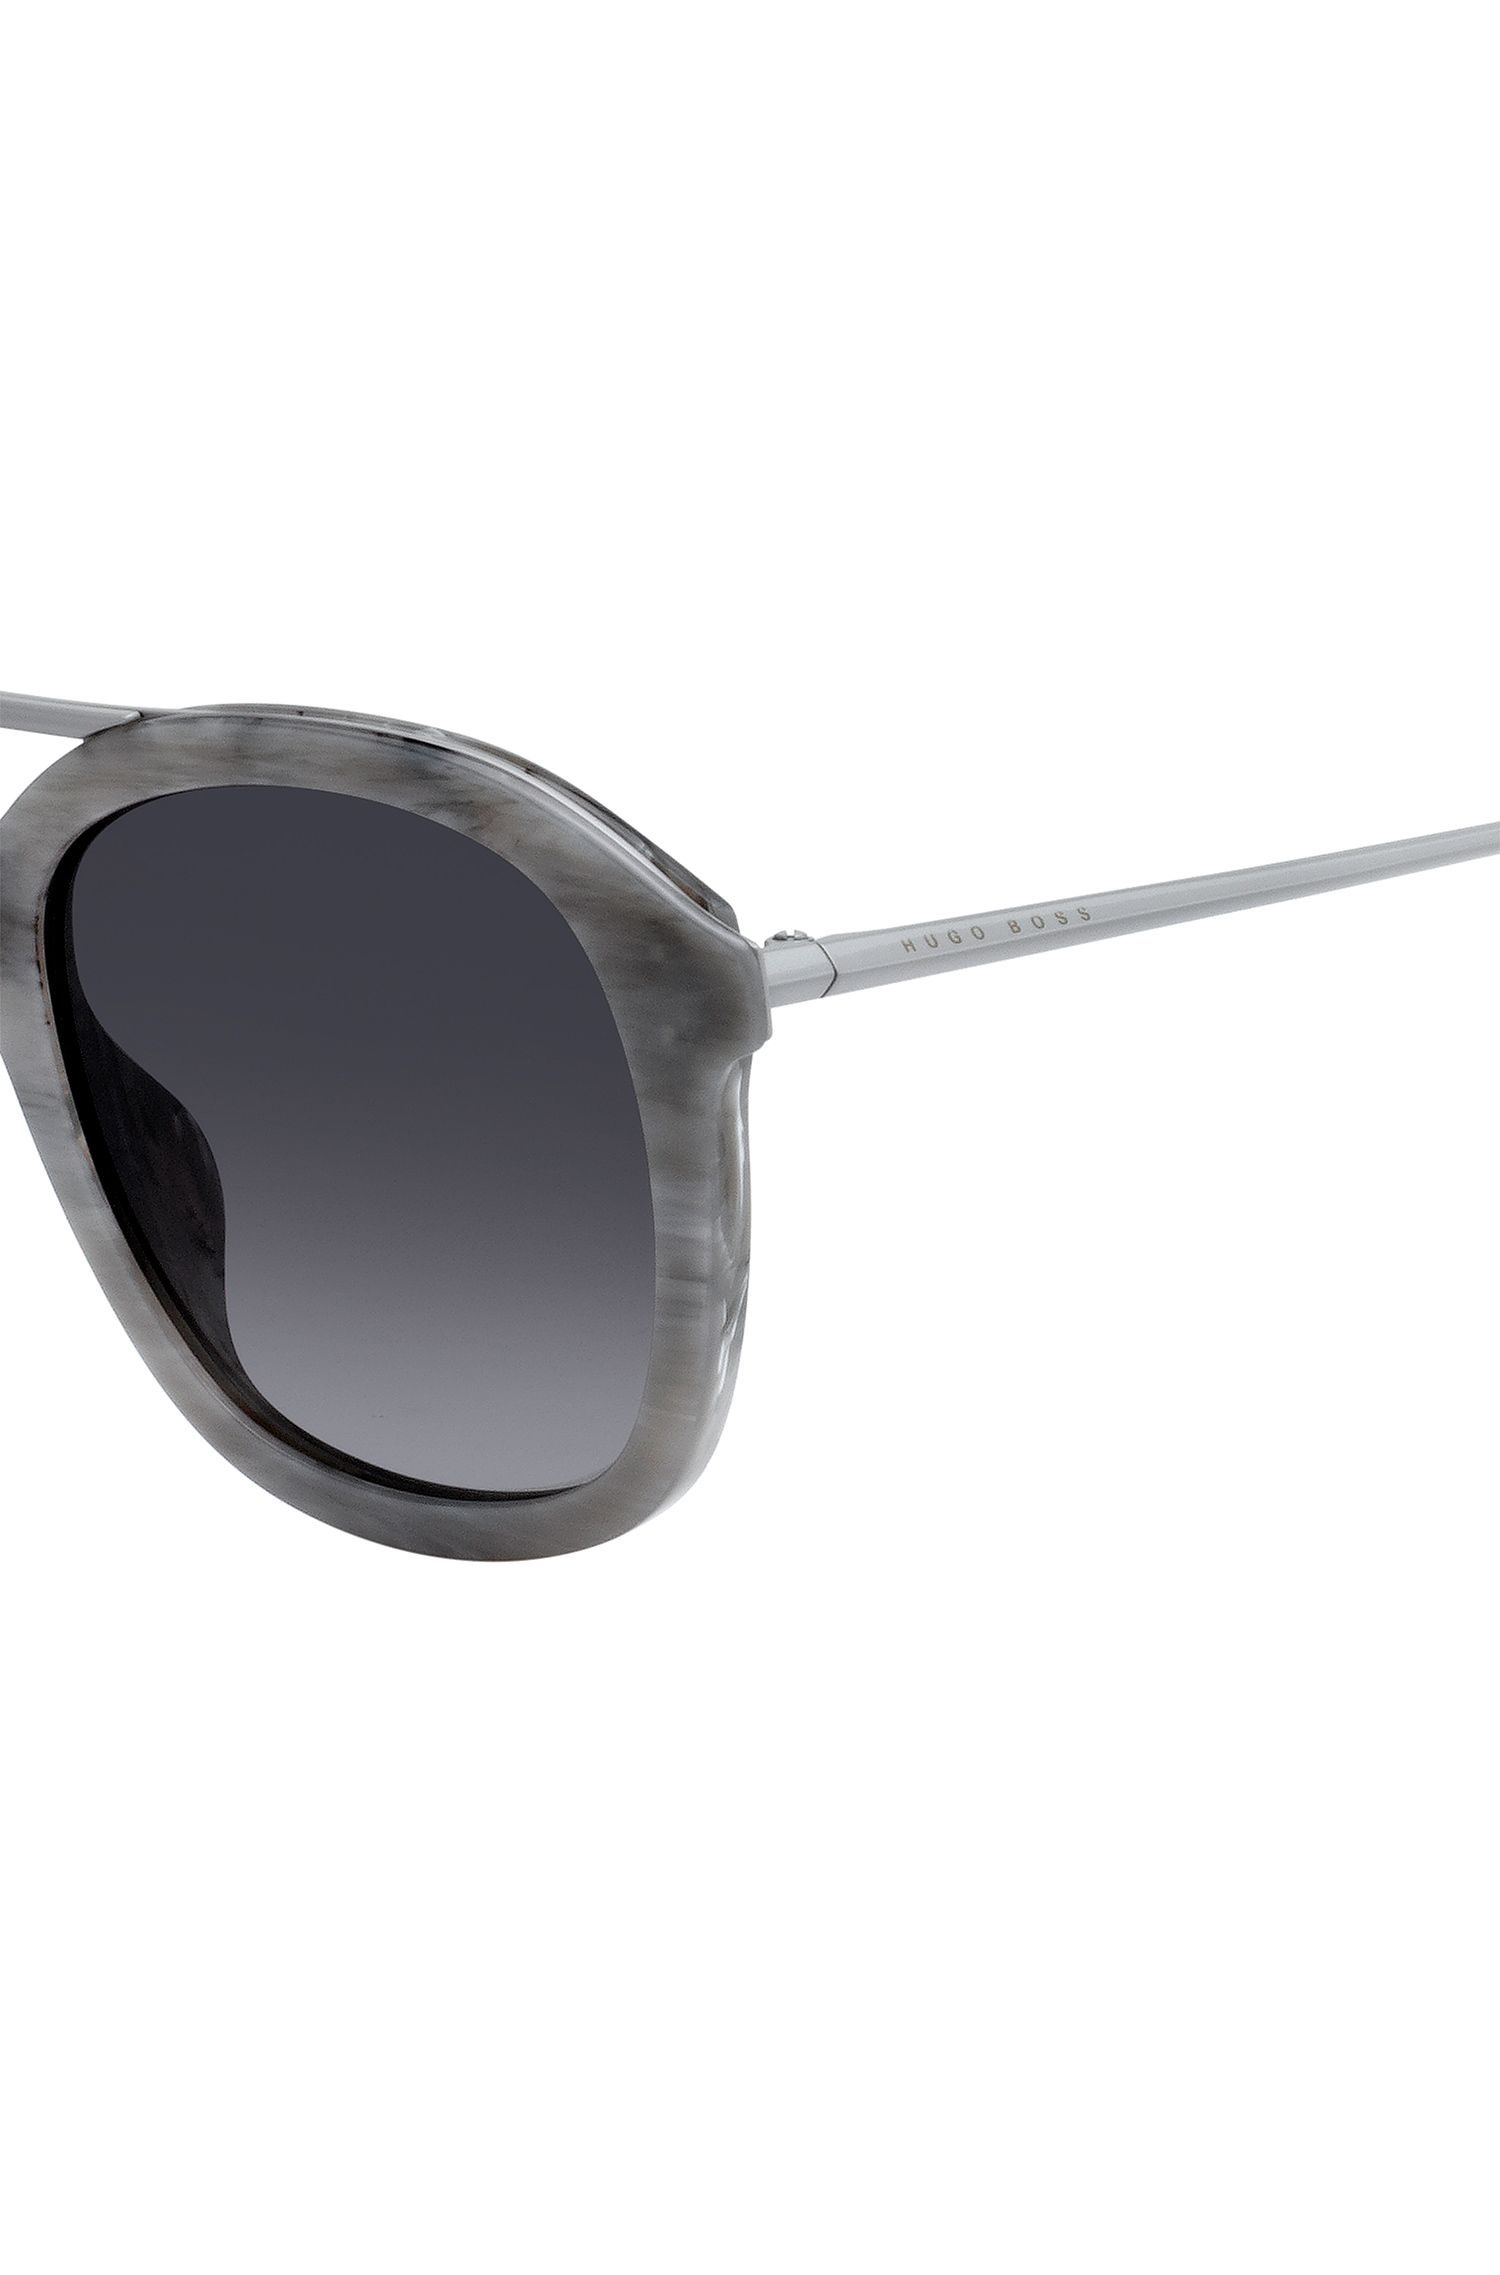 Acetate sunglasses with grey patterned frames